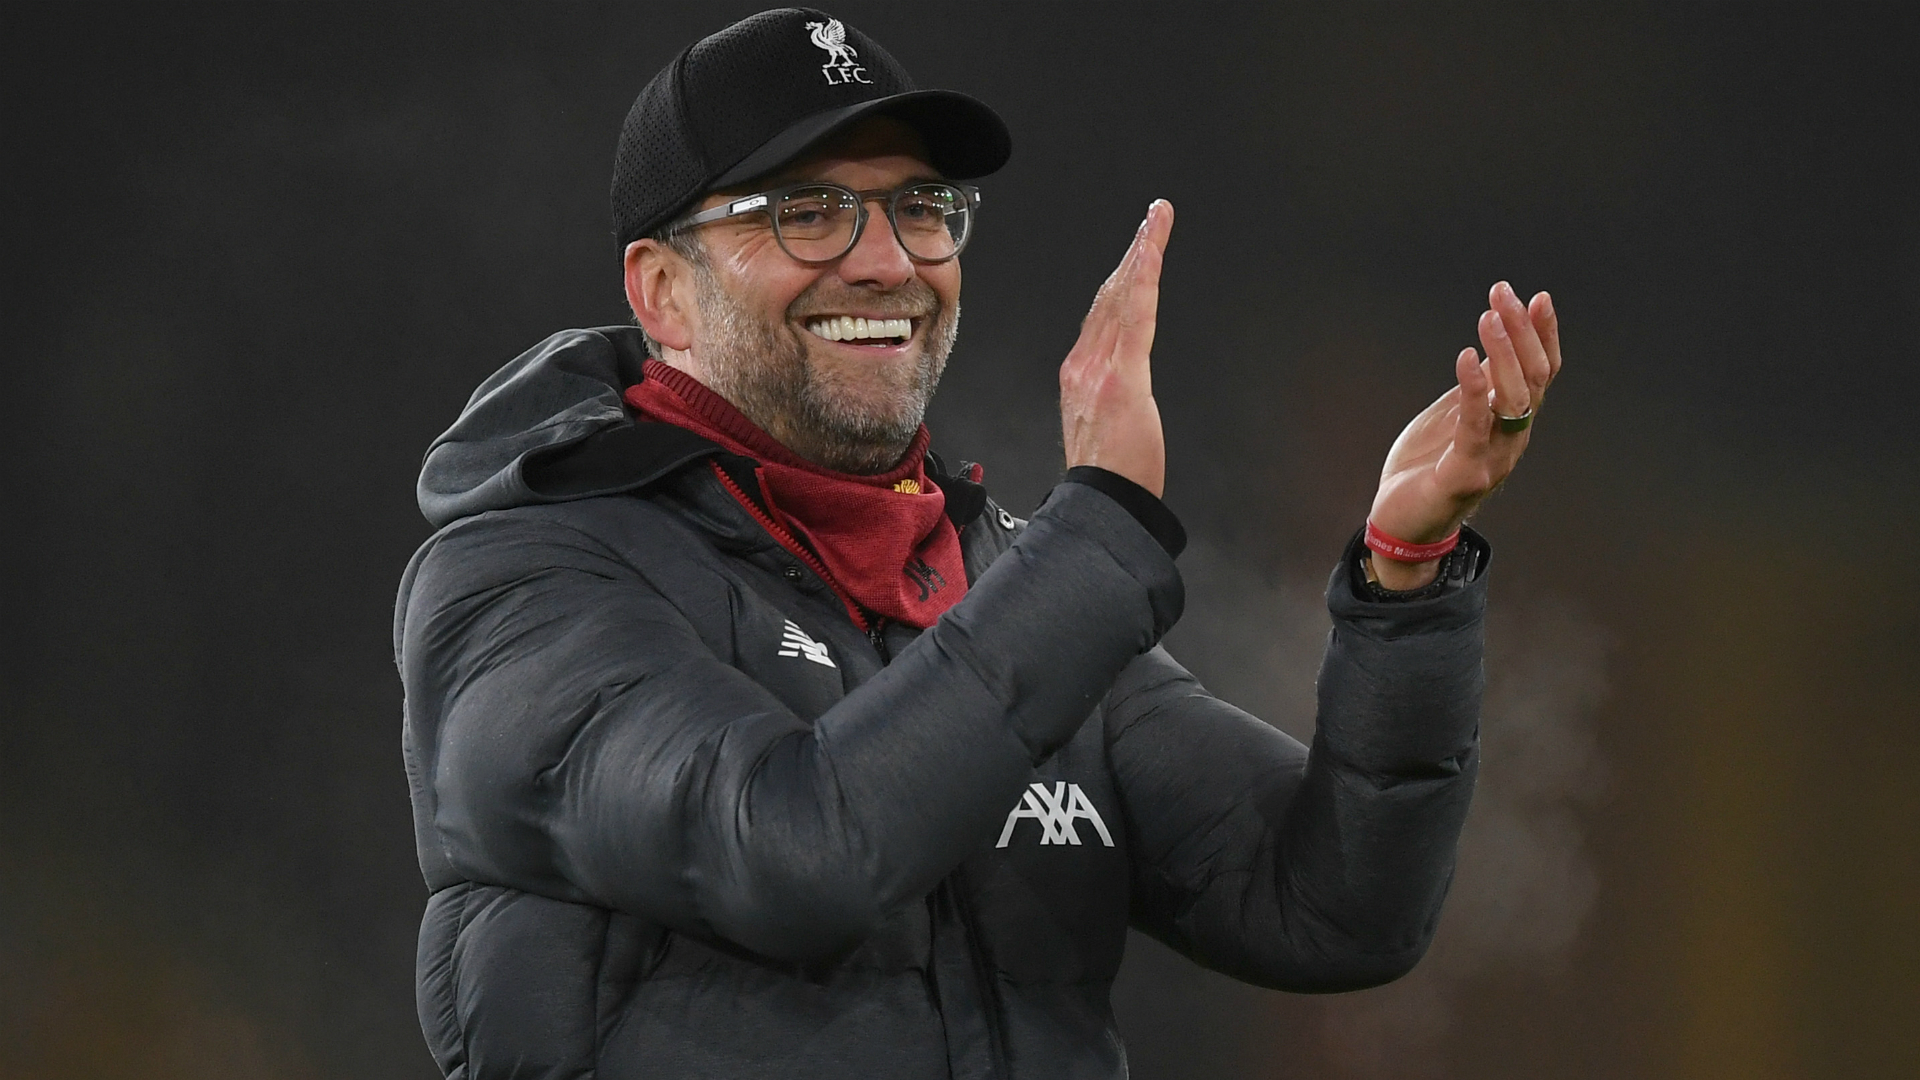 Klopp discusses 'cheeky' fan mail after telling Man Utd supporter he cannot make Liverpool lose